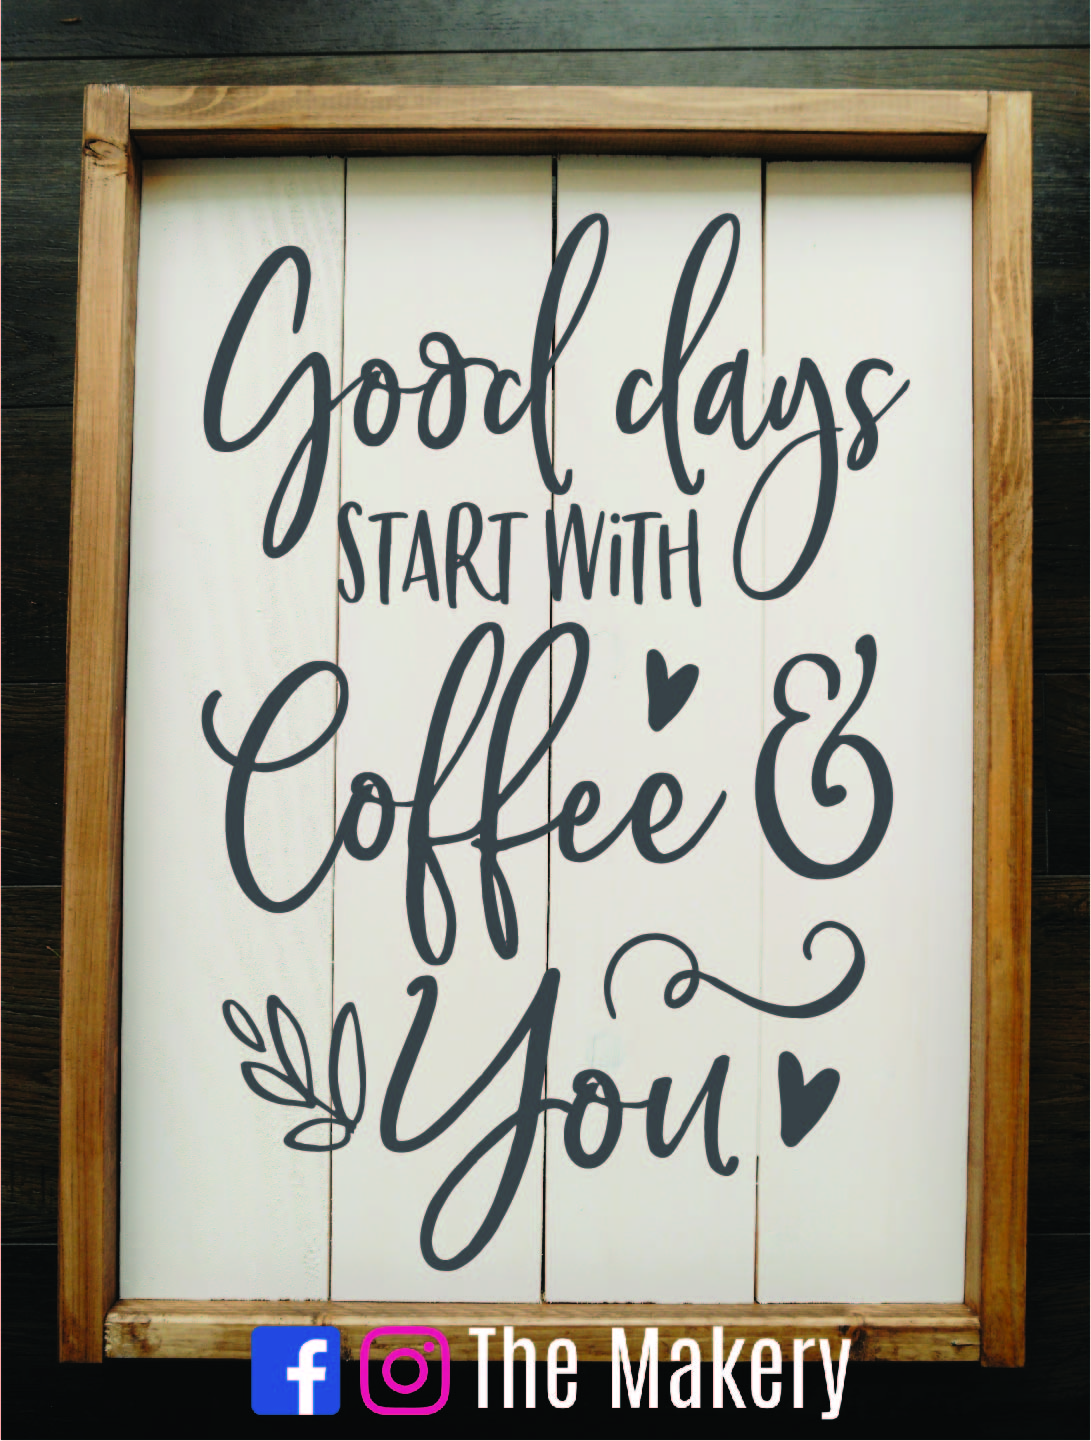 Good days start with coffee and you.jpg